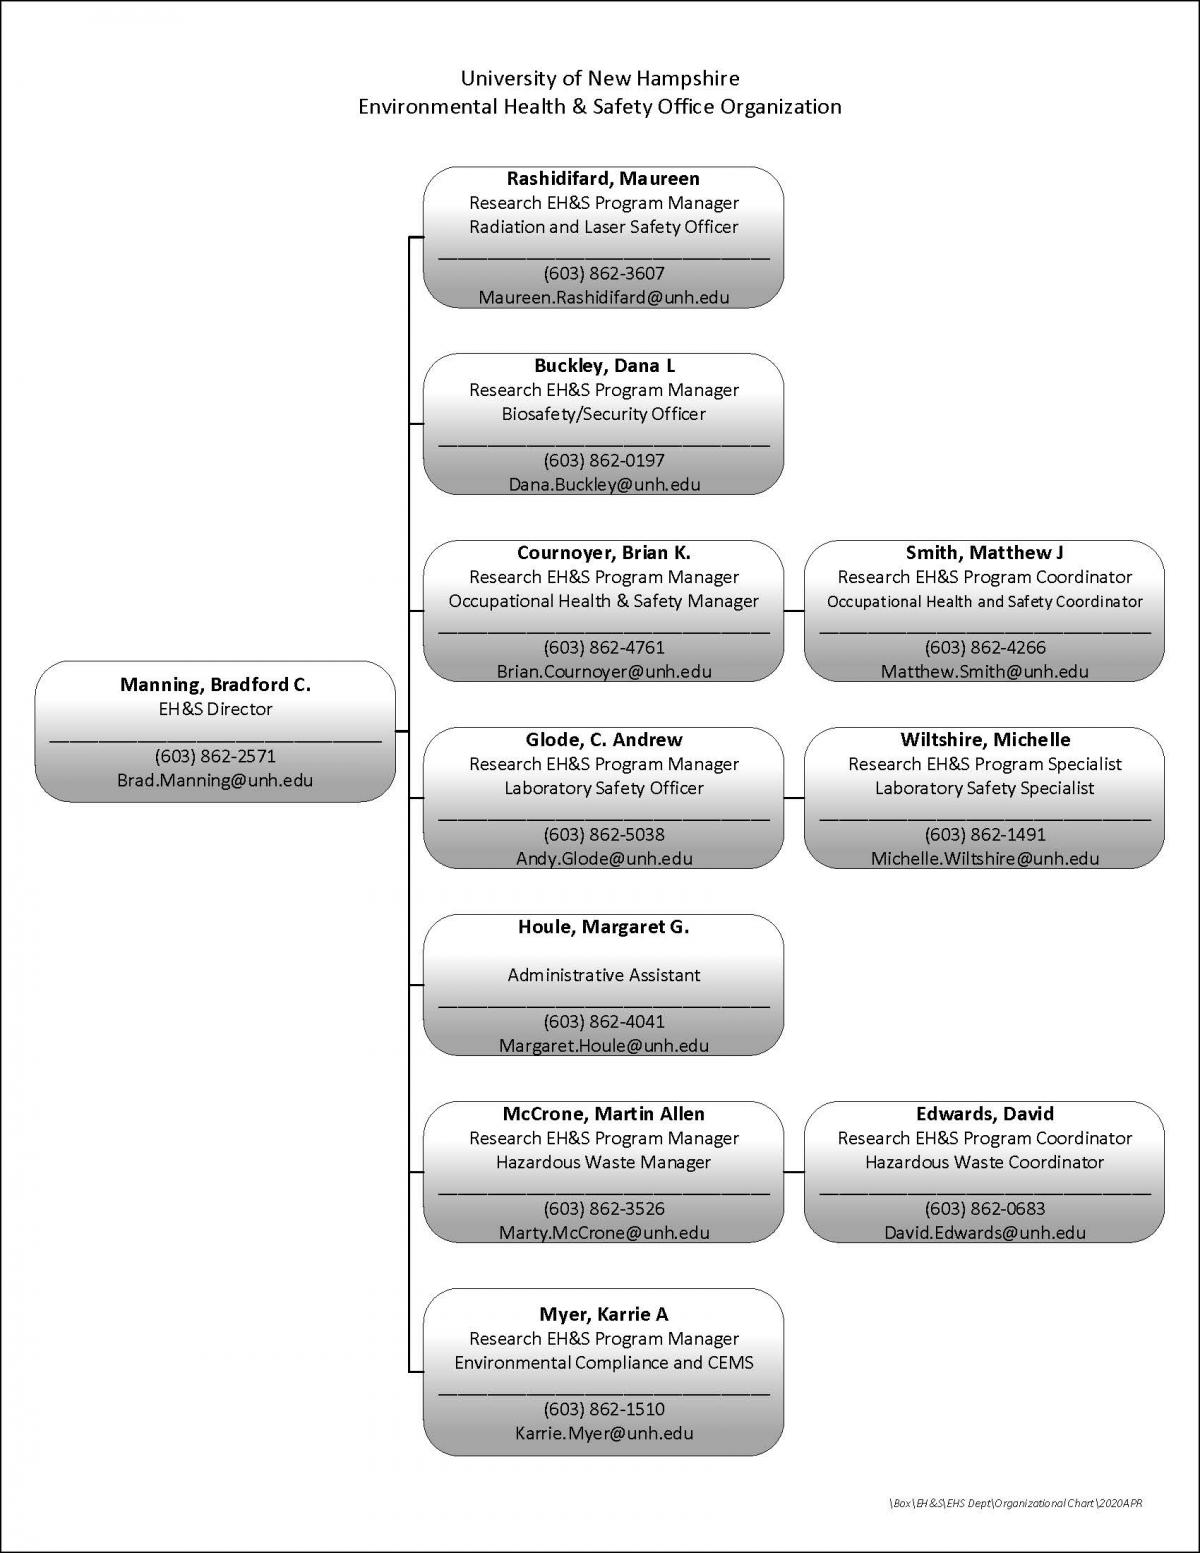 Office of Environmental Health & Safety Organizational Chart